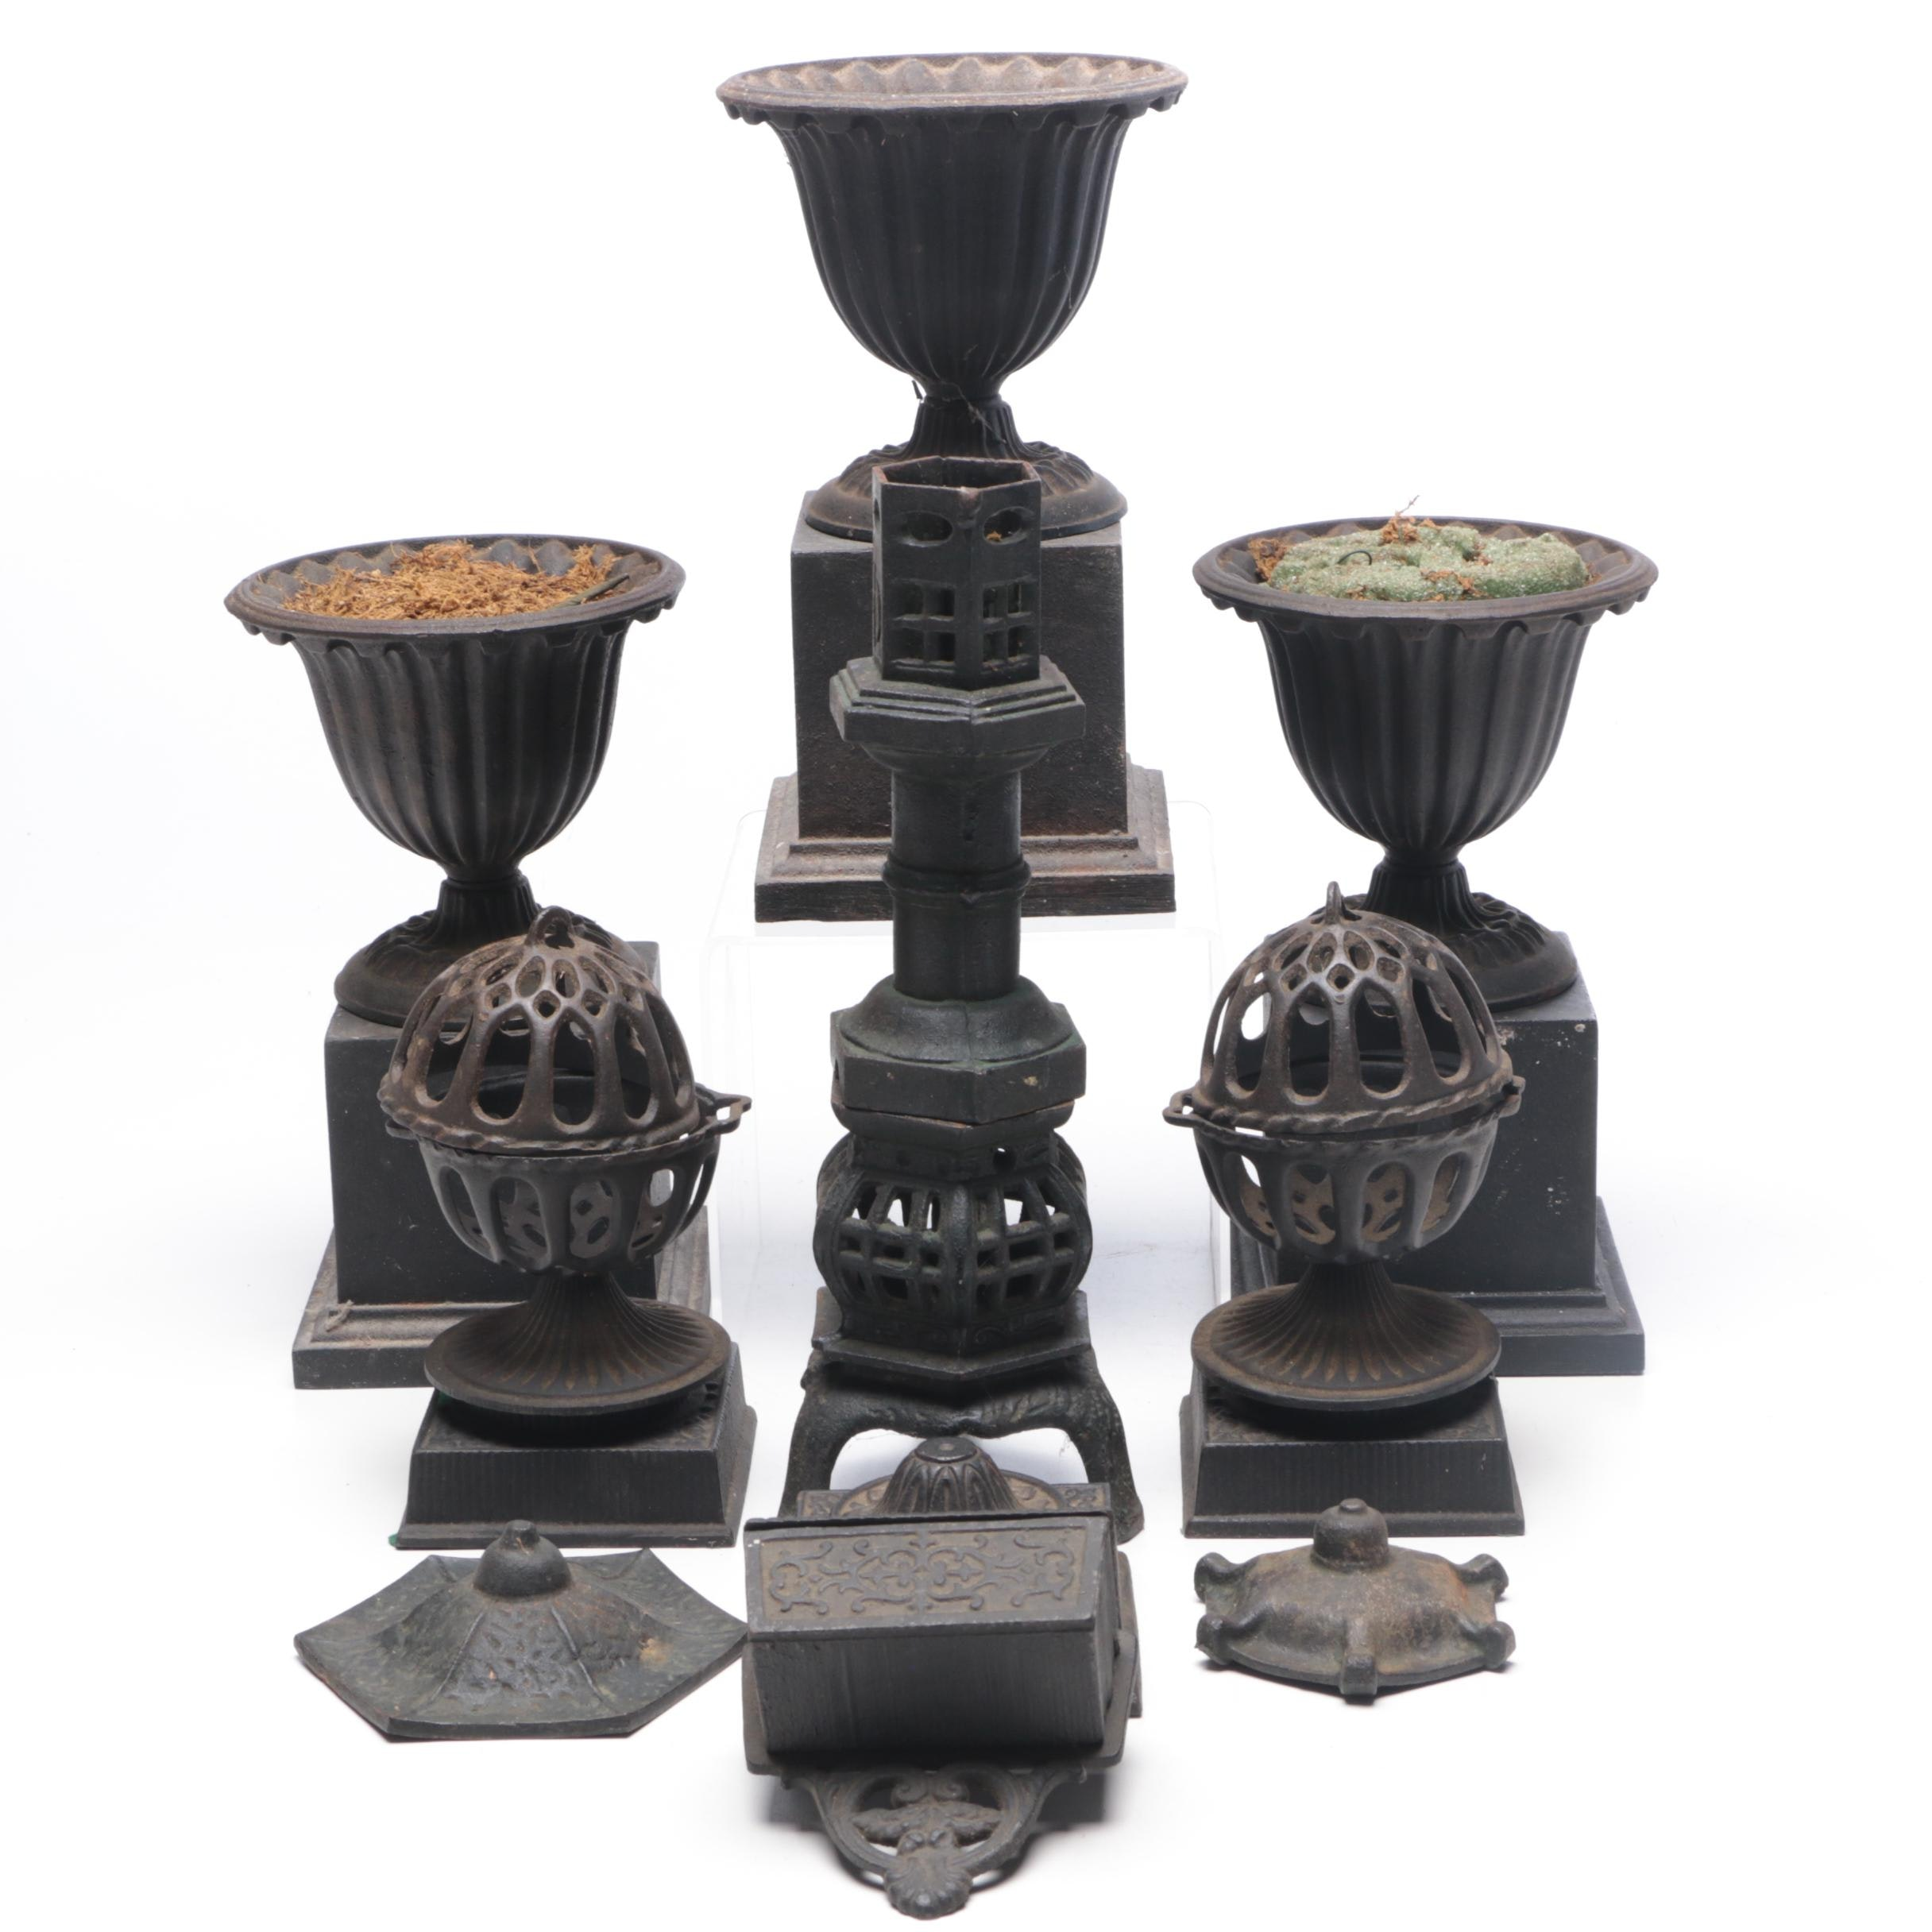 Group of Cast Iron Planters and decor